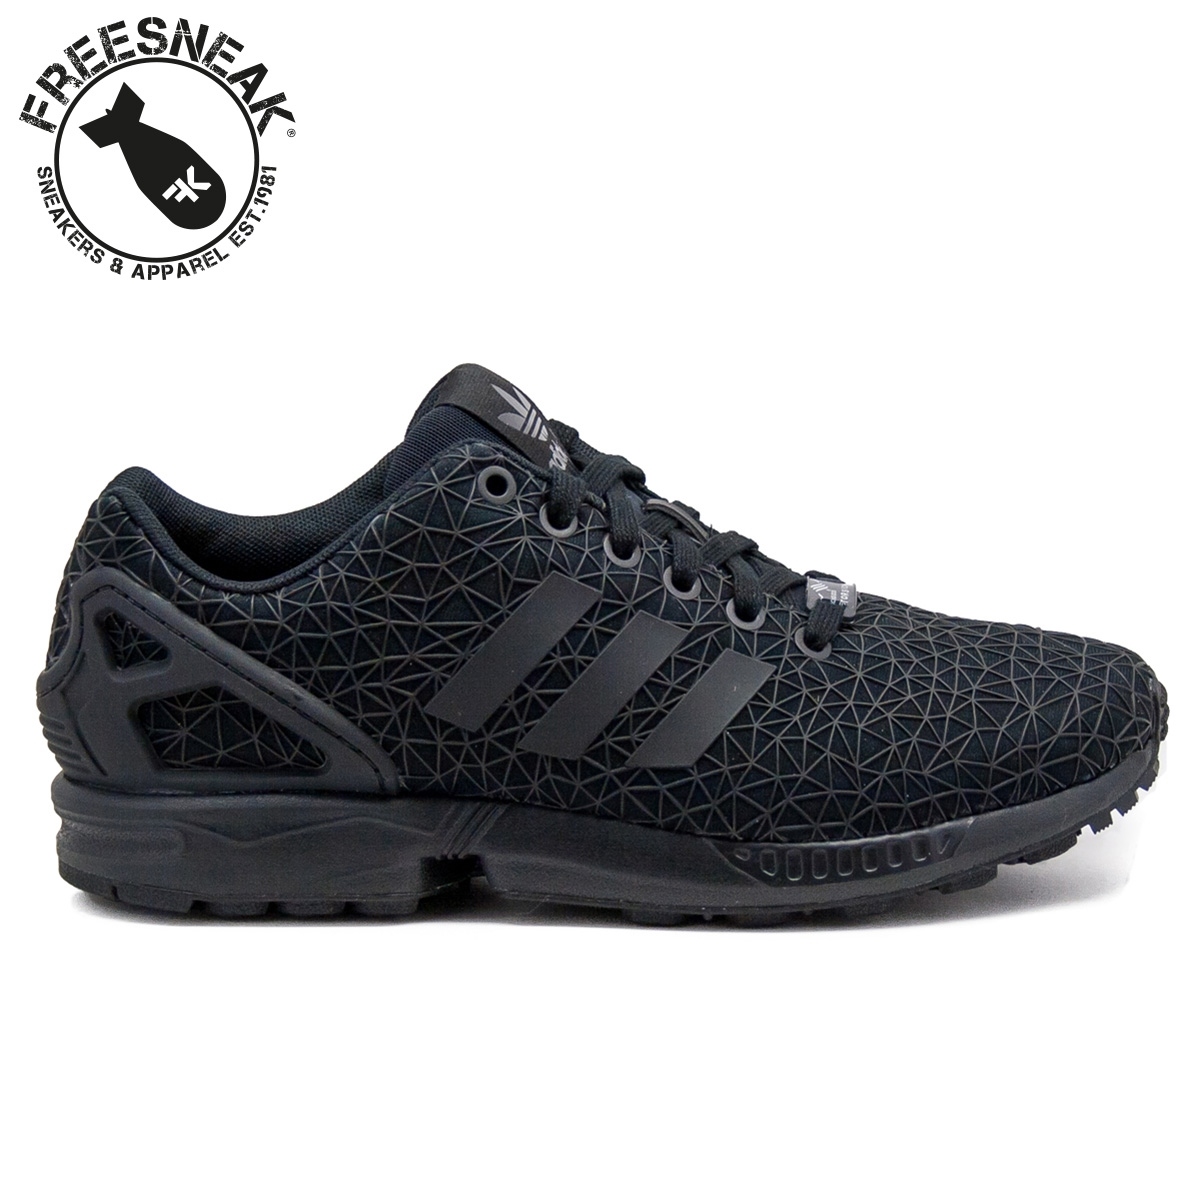 adidas originals zx flux donna nere